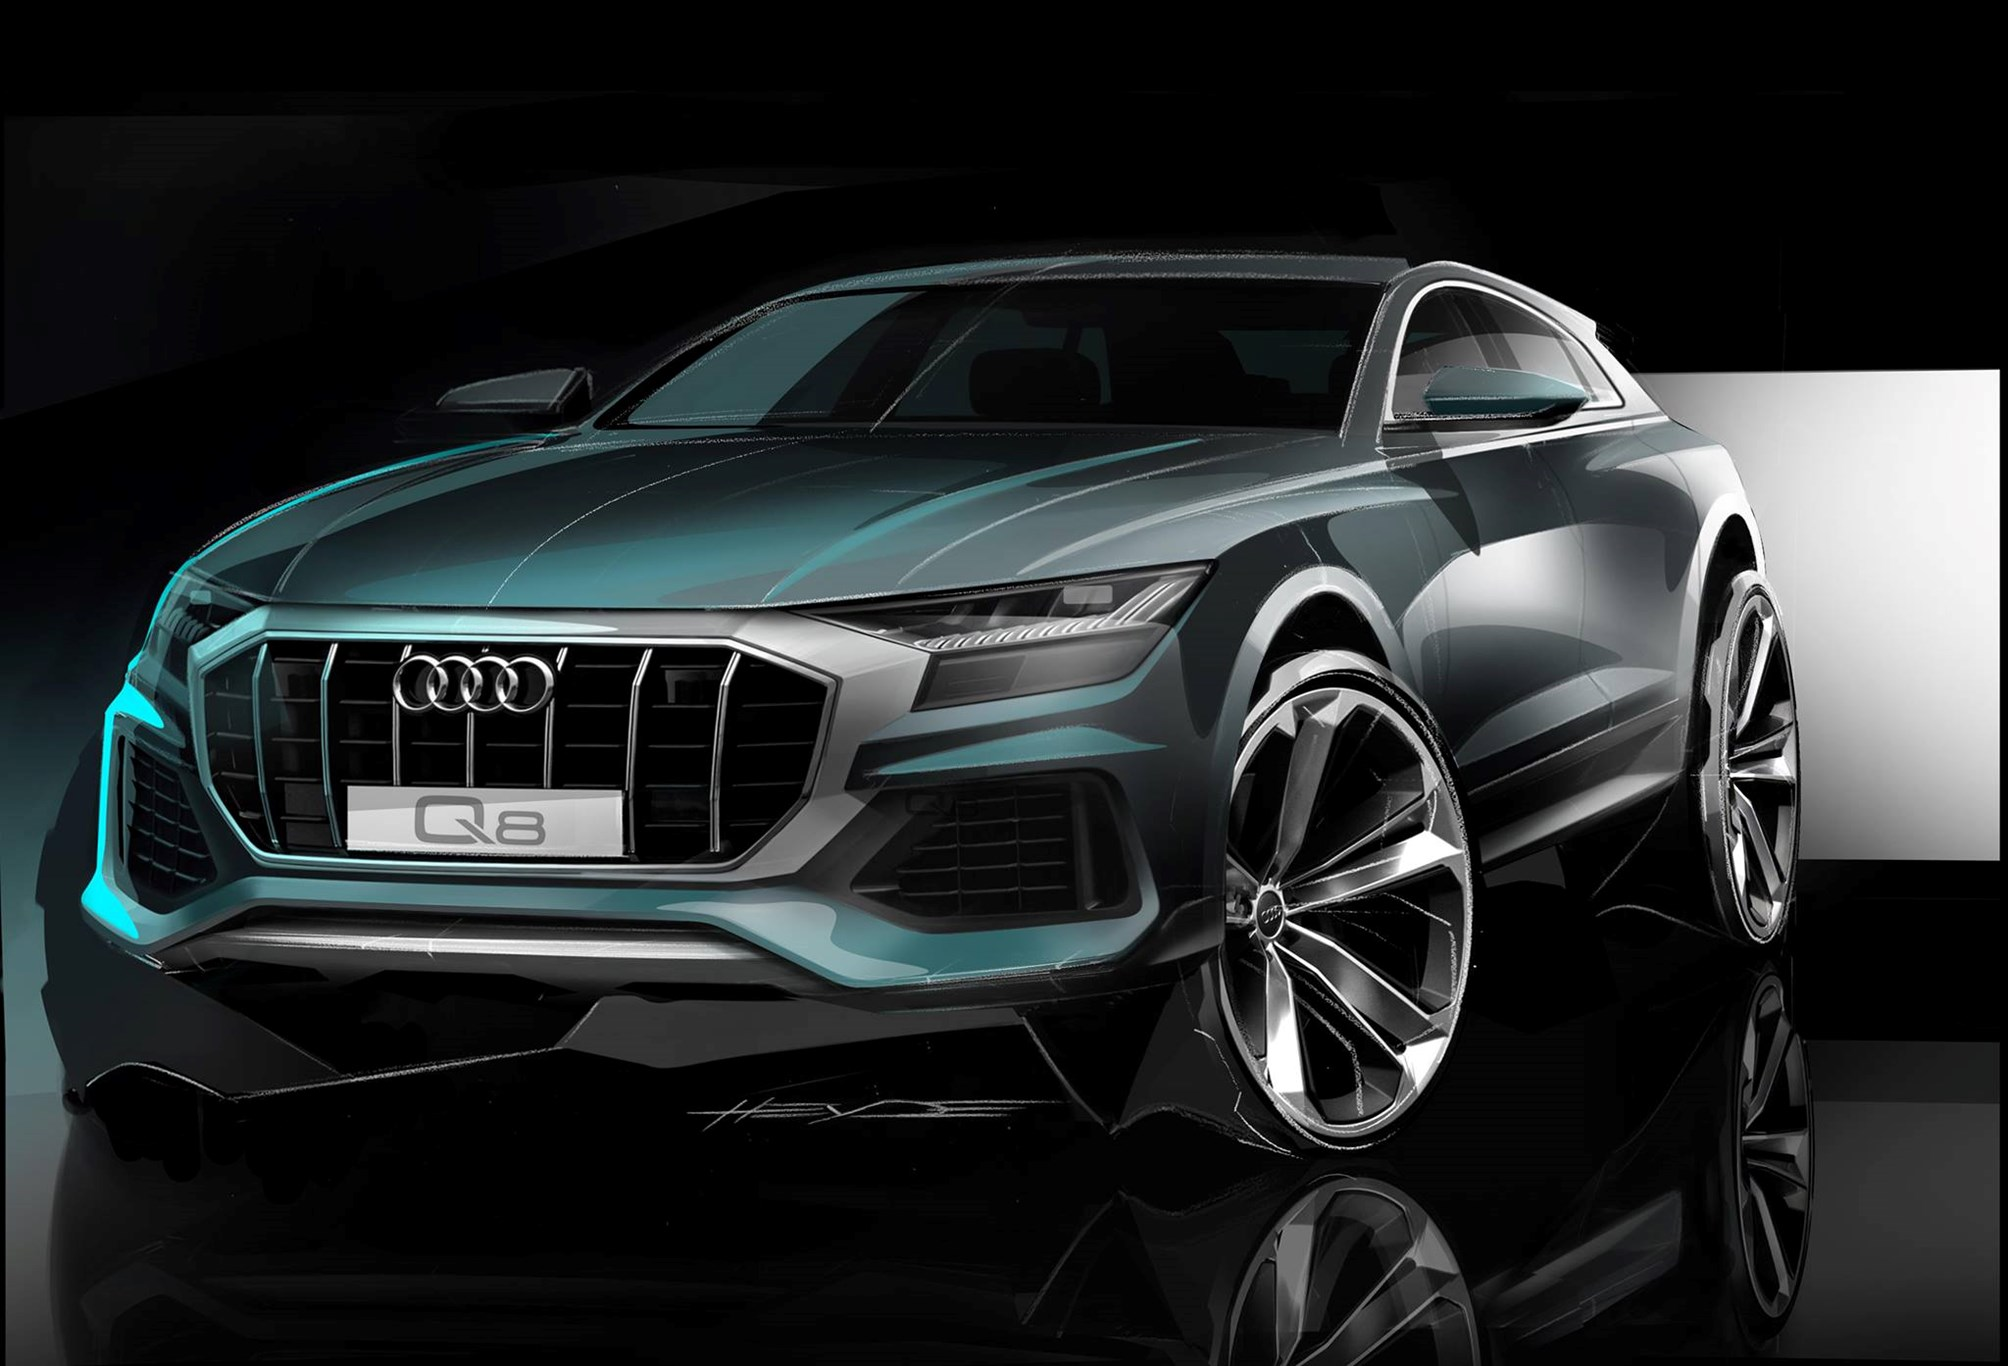 Tesla Suv Specs >> RS Q8 spotted at the 'Ring: Audi's flagship SUV gets hotter | CAR Magazine